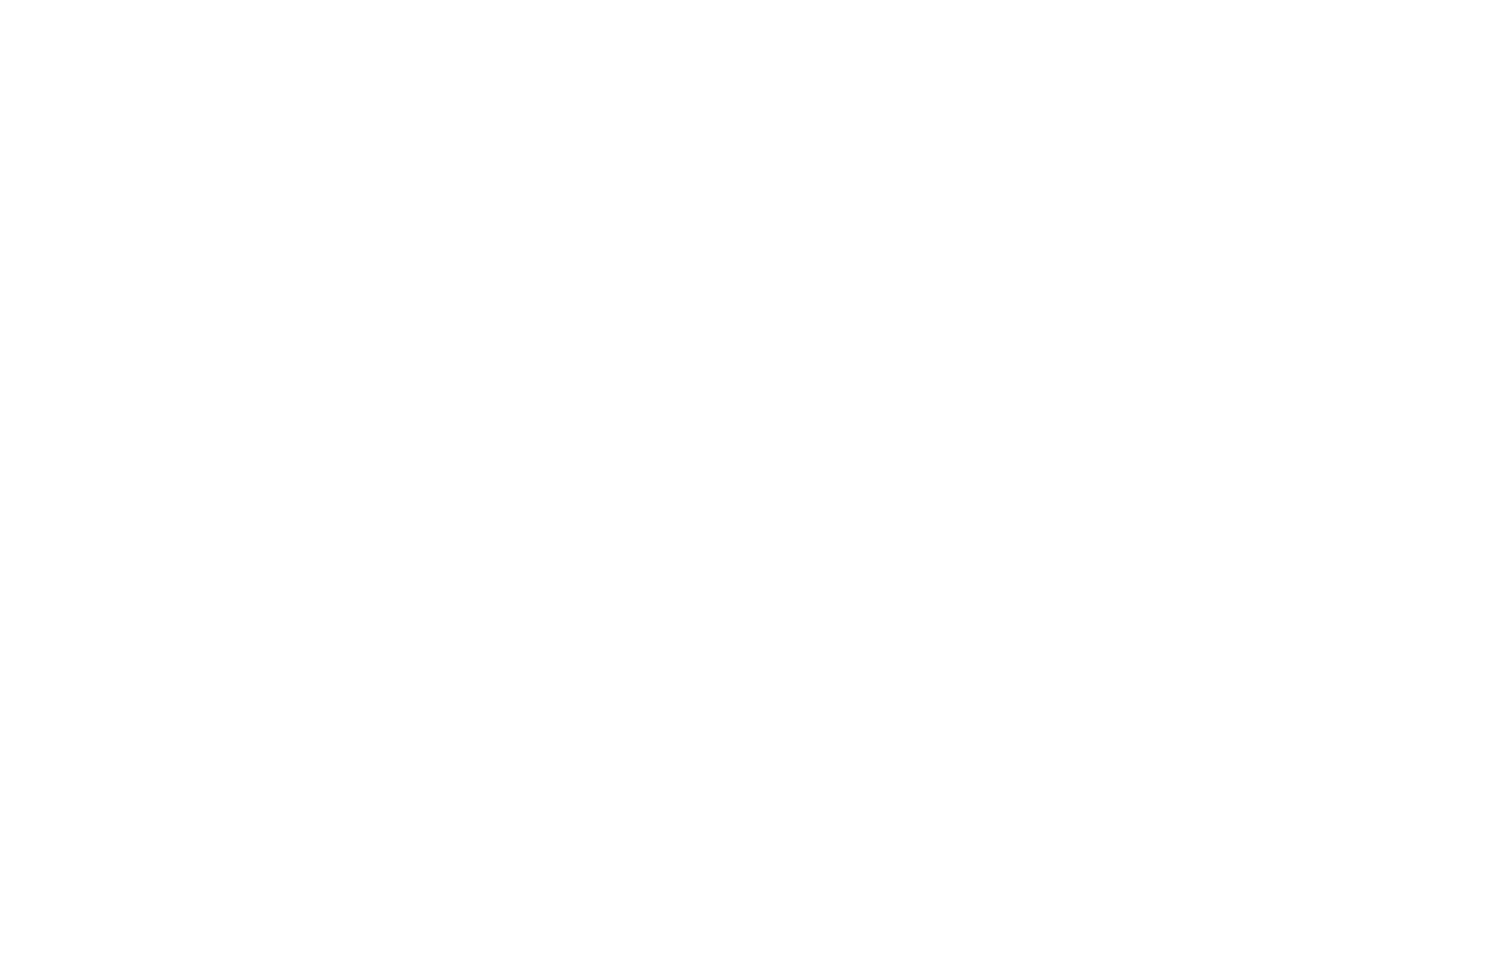 Oakdale Pilates Studio